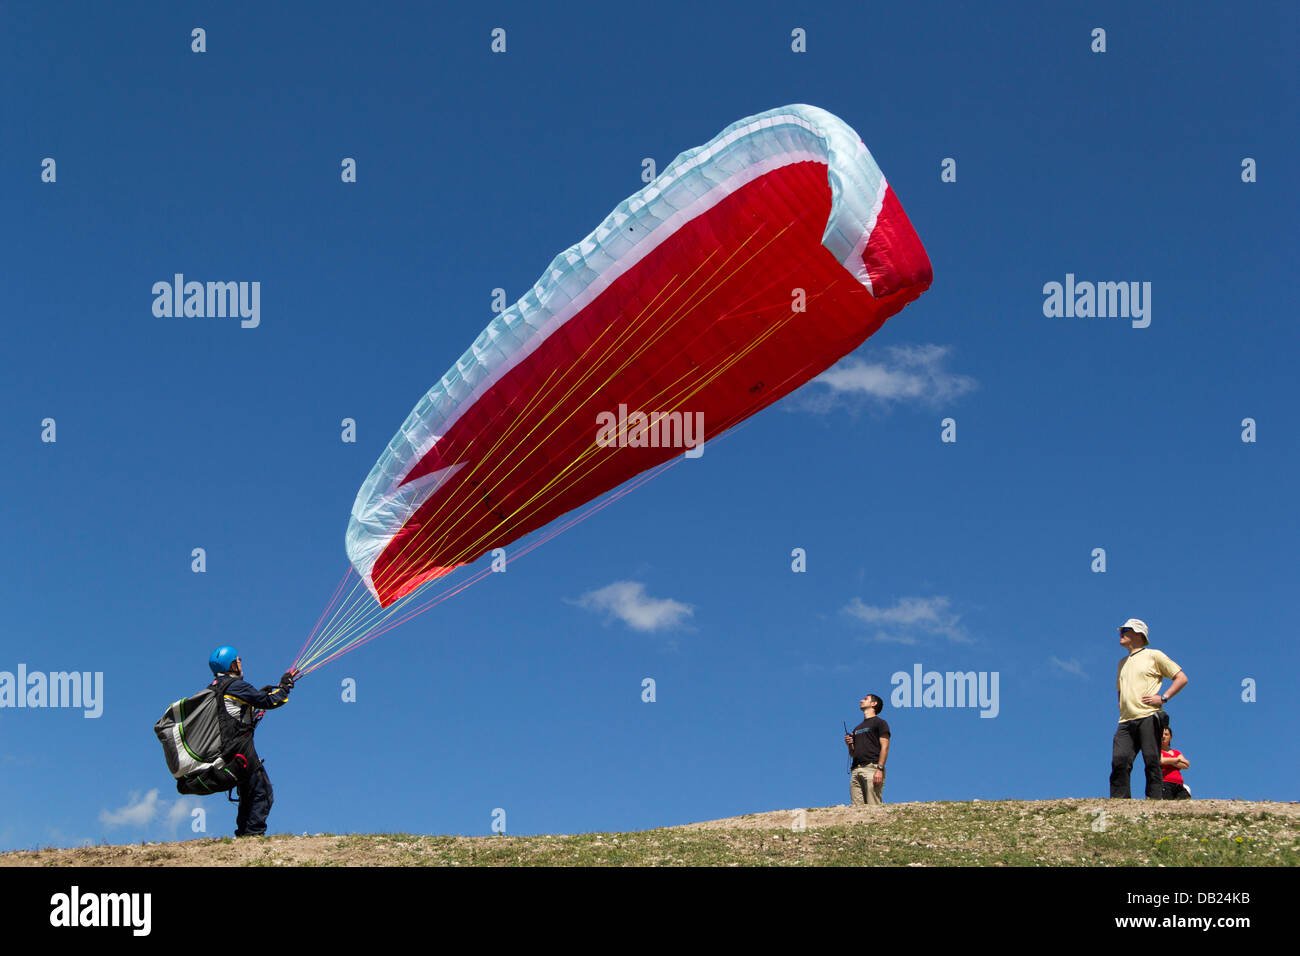 A paraglider pilot performing a reverse launch on take off, Sopot, Bulgaria Stock Photo